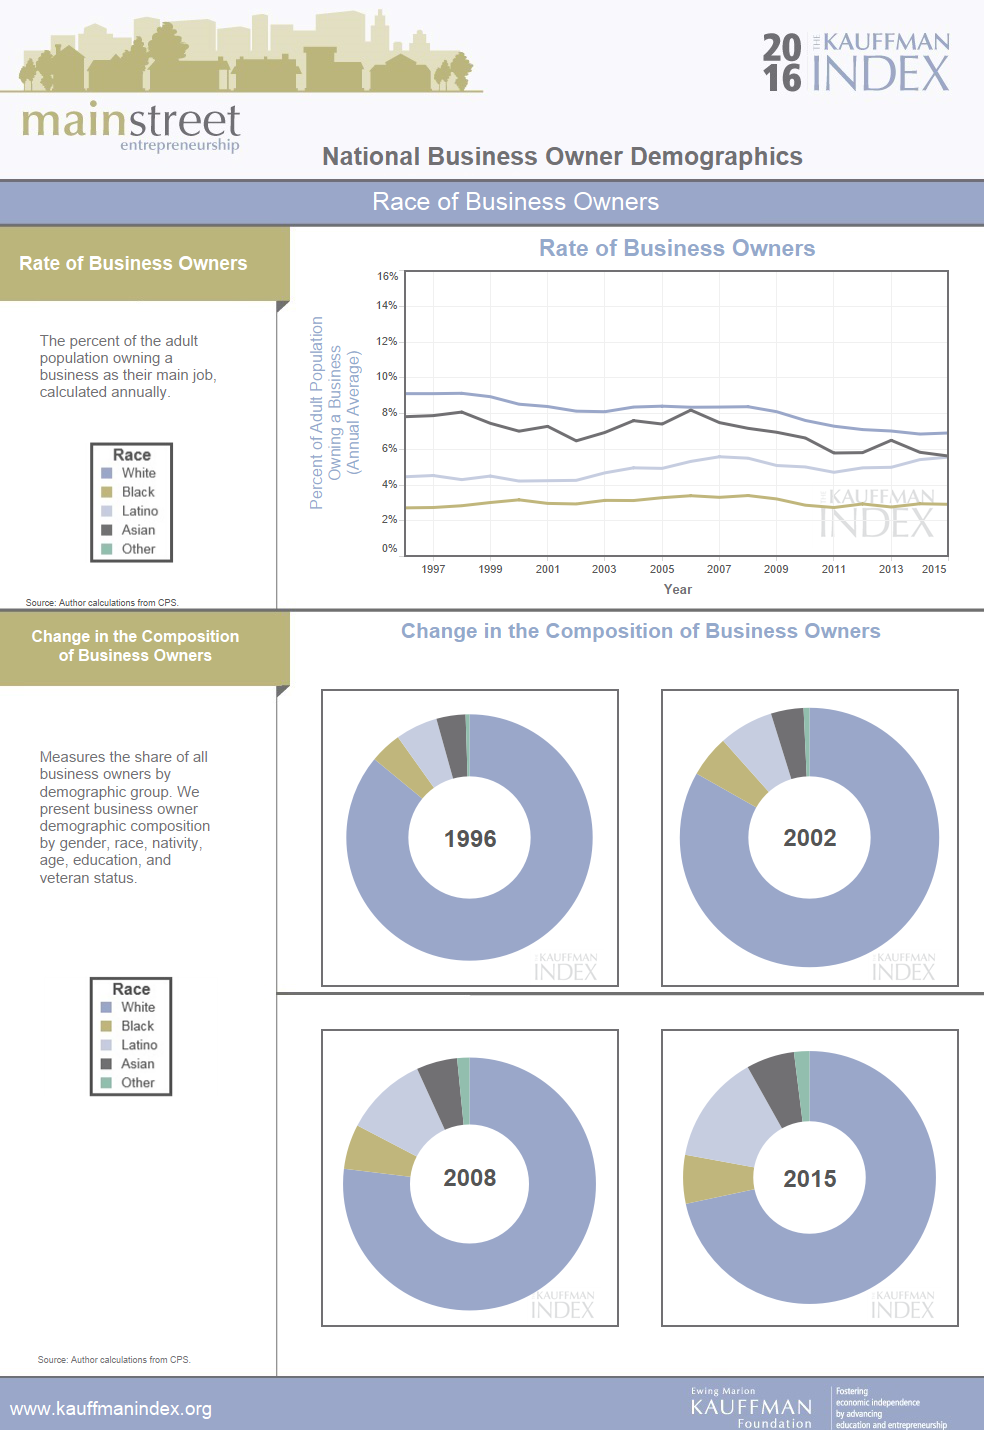 Kauffman Index - 2016 - Main Street - Entrepreneurial Demographics Profiles (1).png